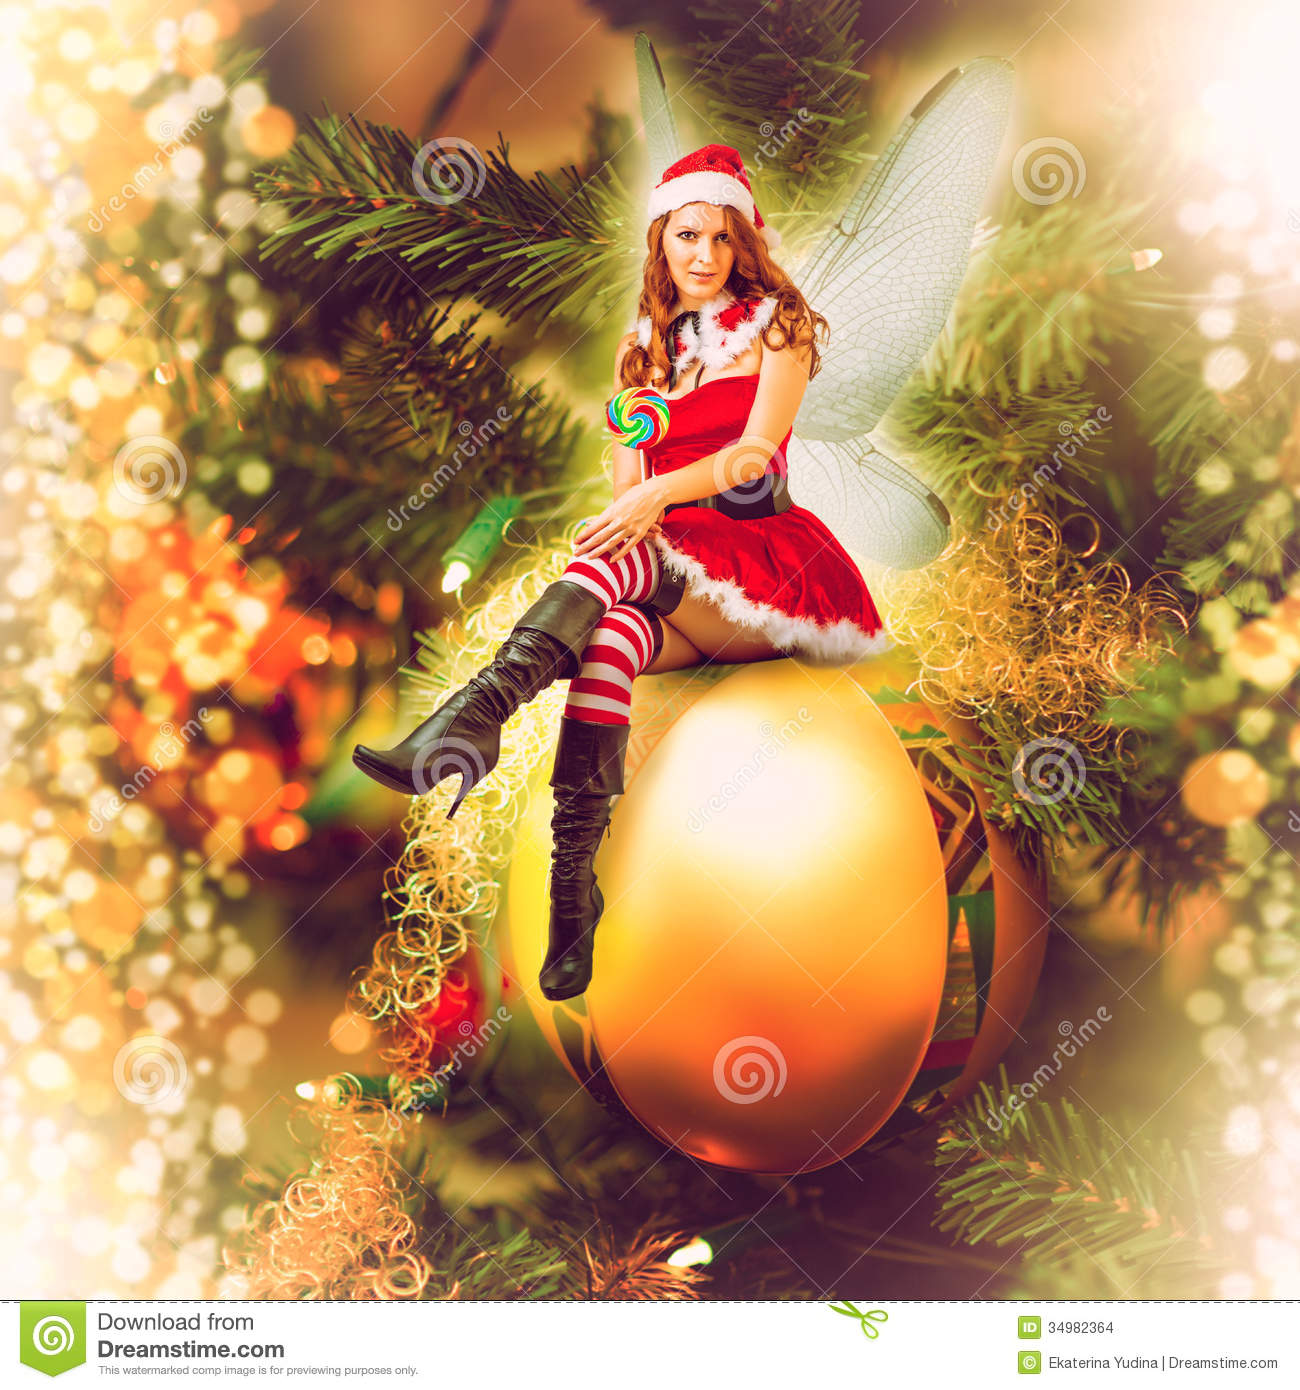 Fairy Christmas Woman On A Decorative Ball Stock Images - Image ...